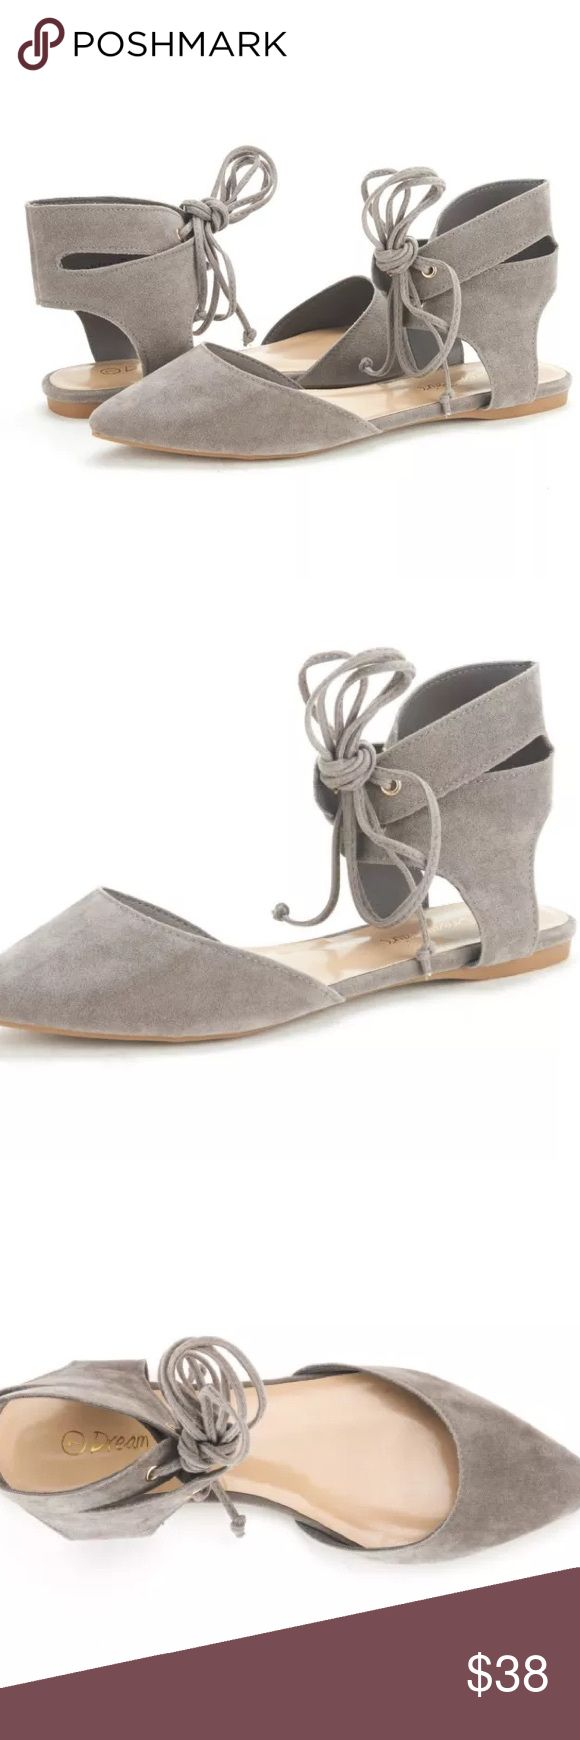 "Lace up gladiator flats Lace up gladiator flats. New w/box. All sizes. Color: taupe.                                                              Man Made Material Soft Lining For Best Comfort Heel height: 0.15"" (approx) TPR rubber sole Cushioned Foot-Bed Gladiator Lace up Design Shoes Flats & Loafers"